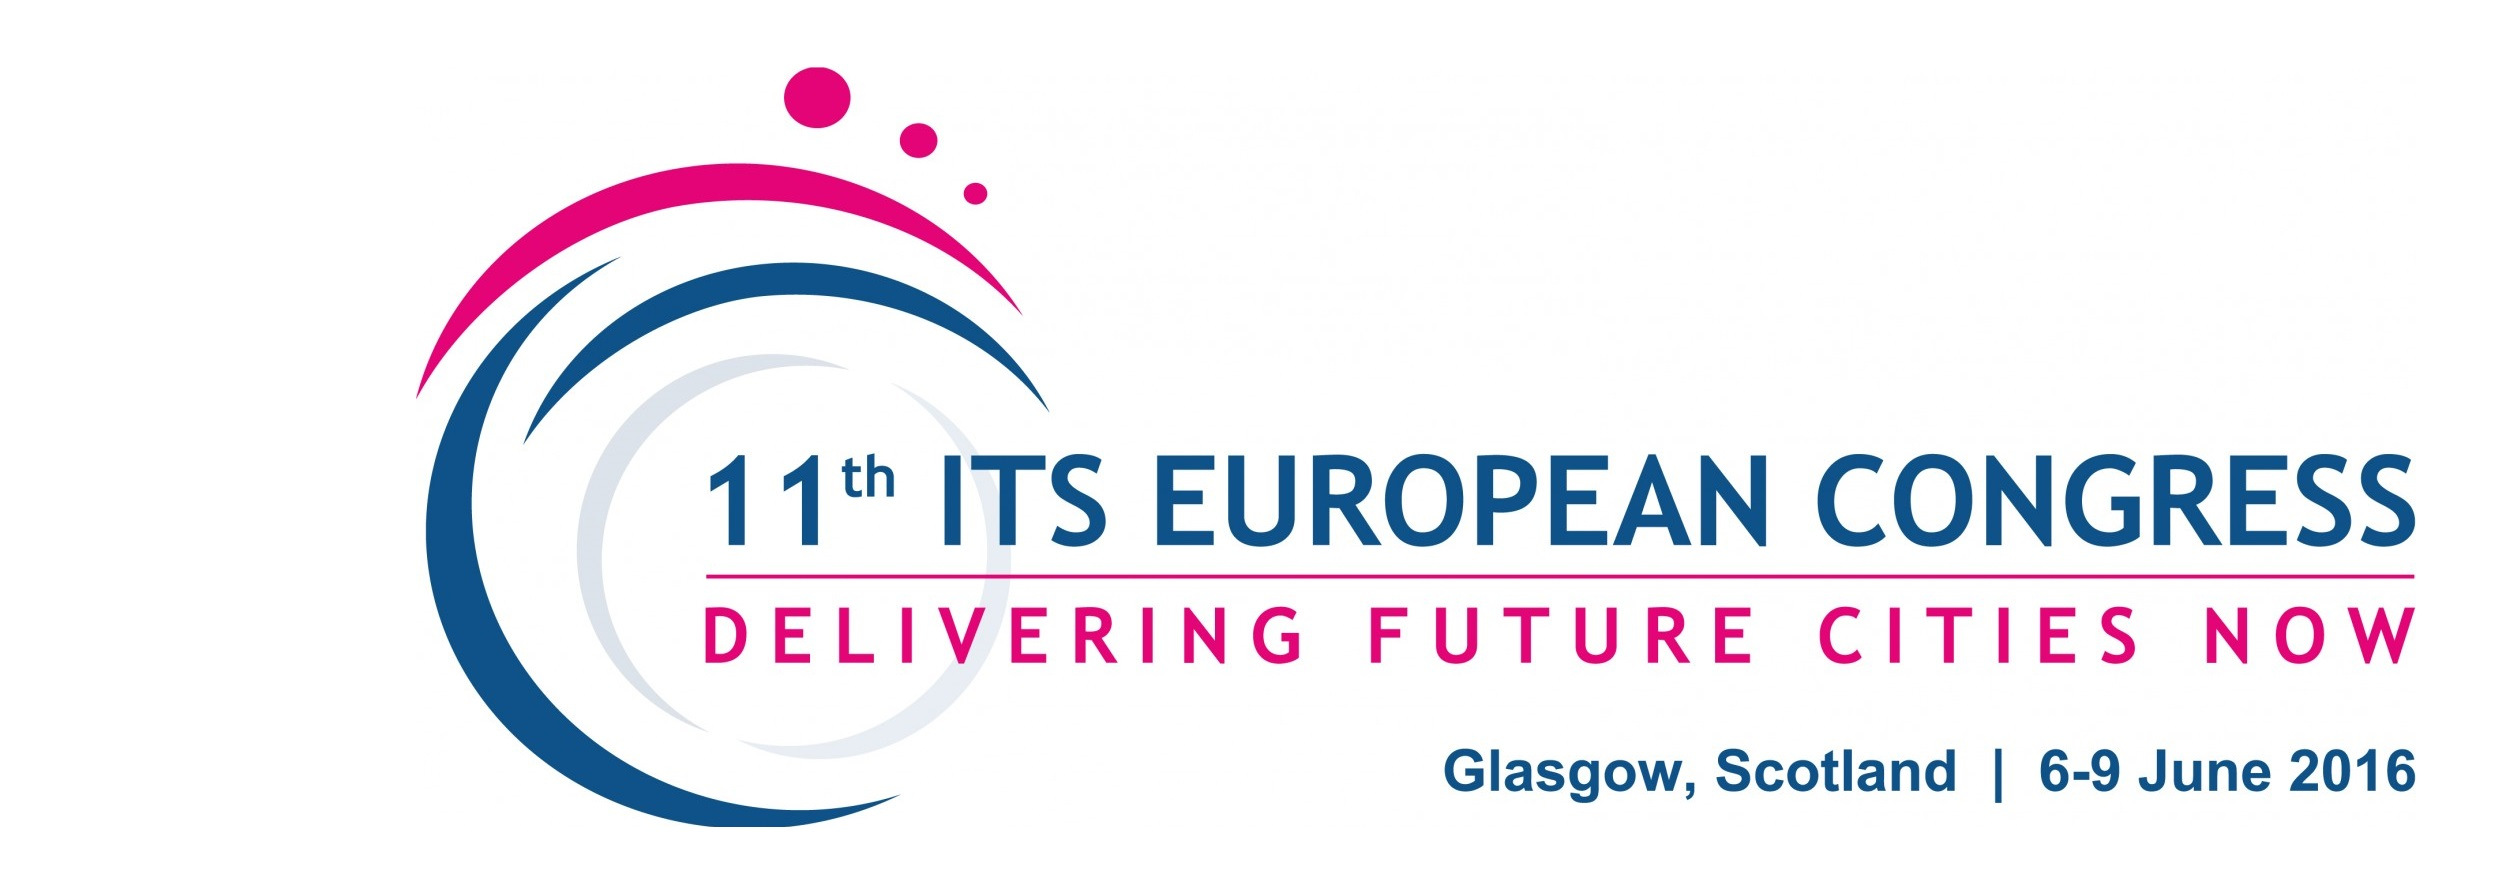 #ITSGlasgow16 Proceedings are now available for download